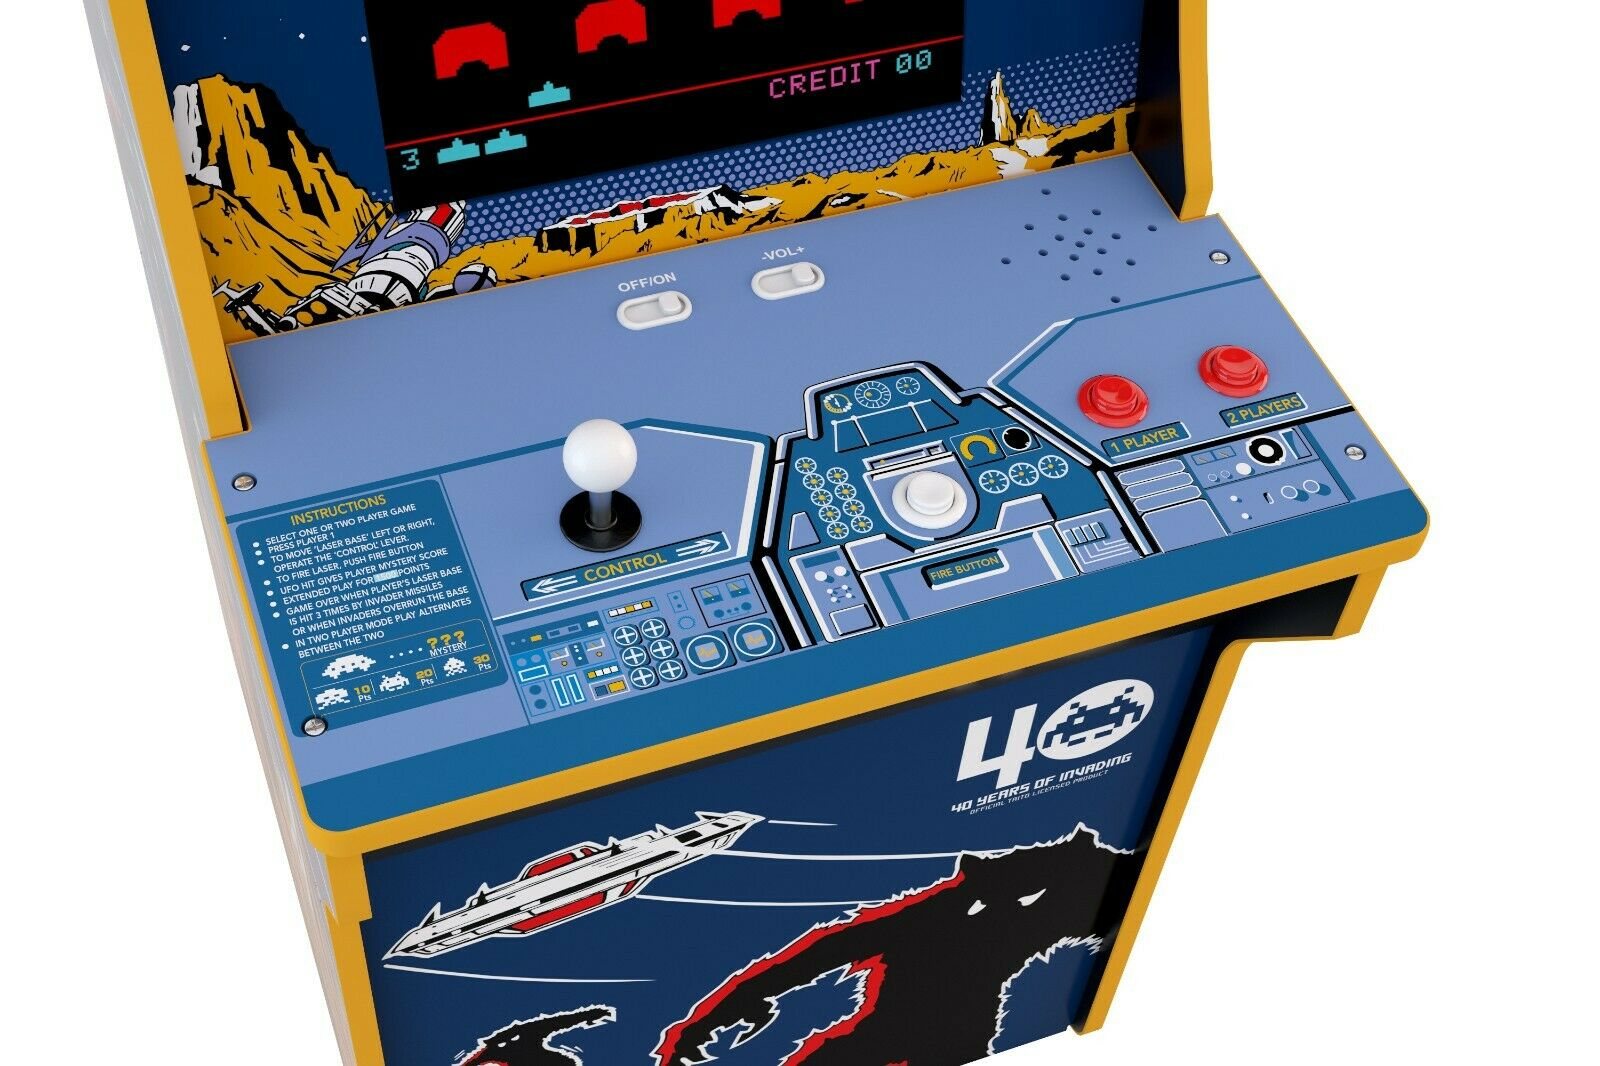 Galaga or Space Invaders Replacement Joystick new Arcade 1up